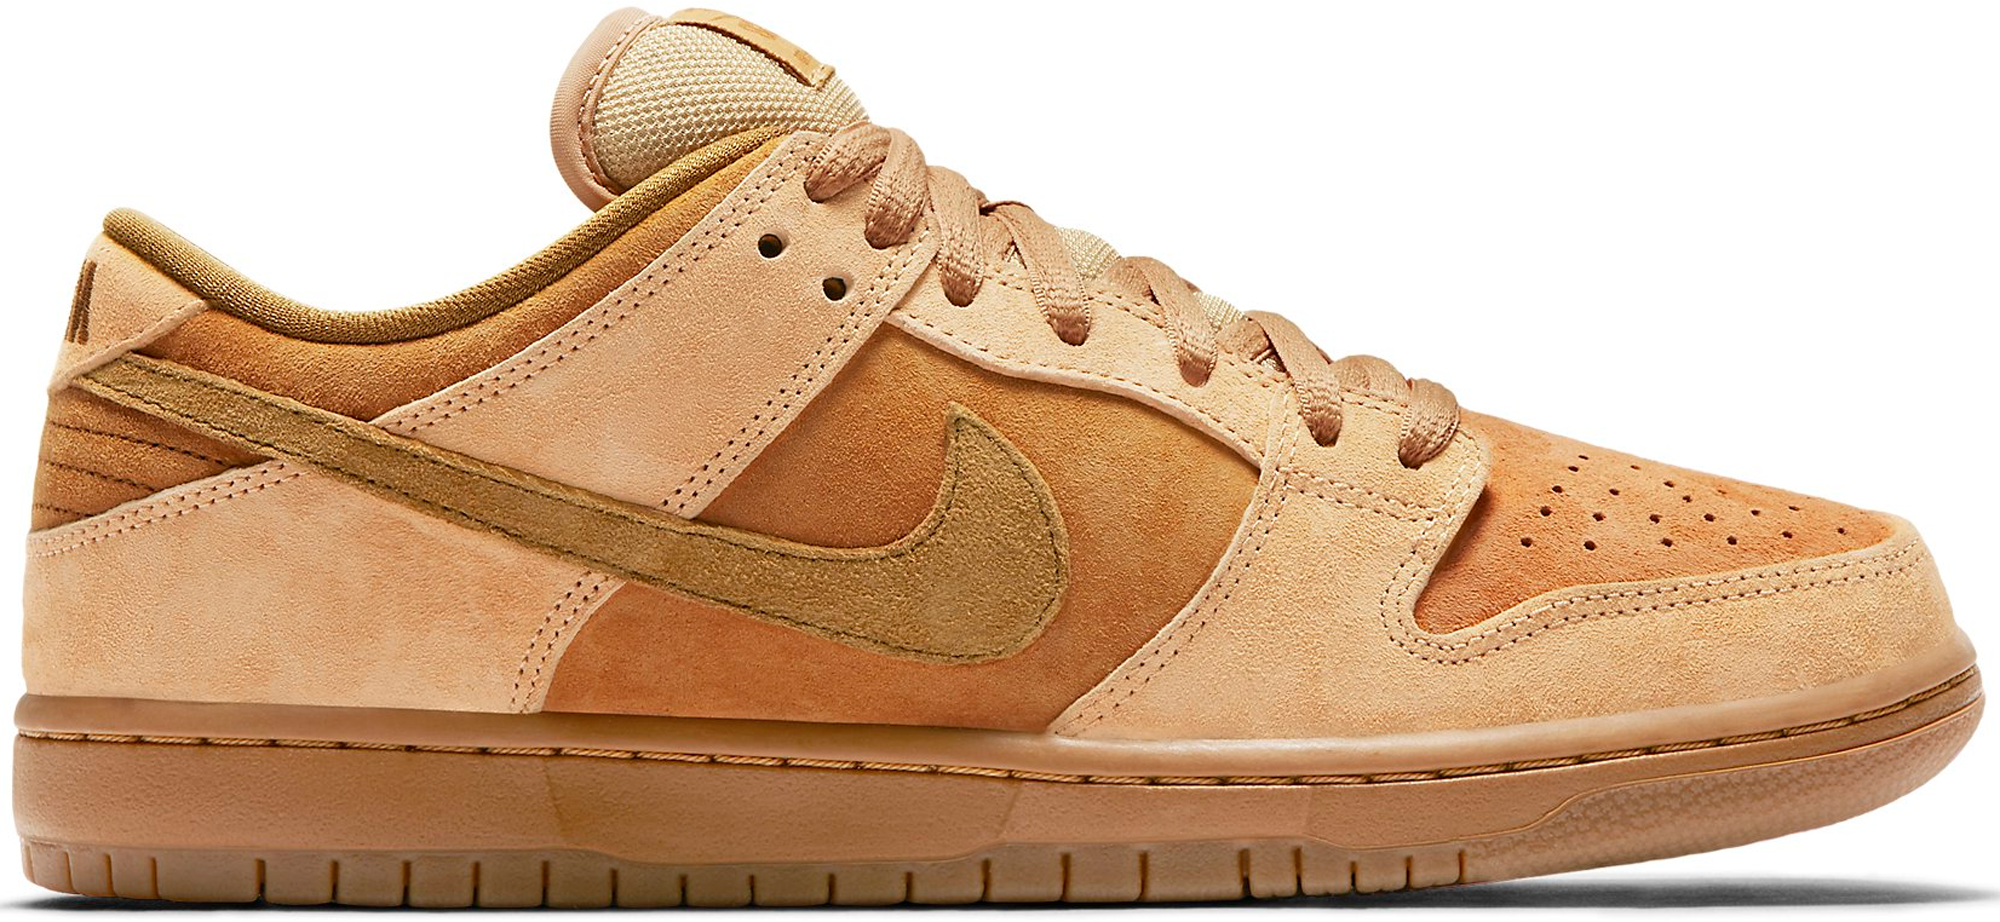 Nike SB Dunk Low Wheat